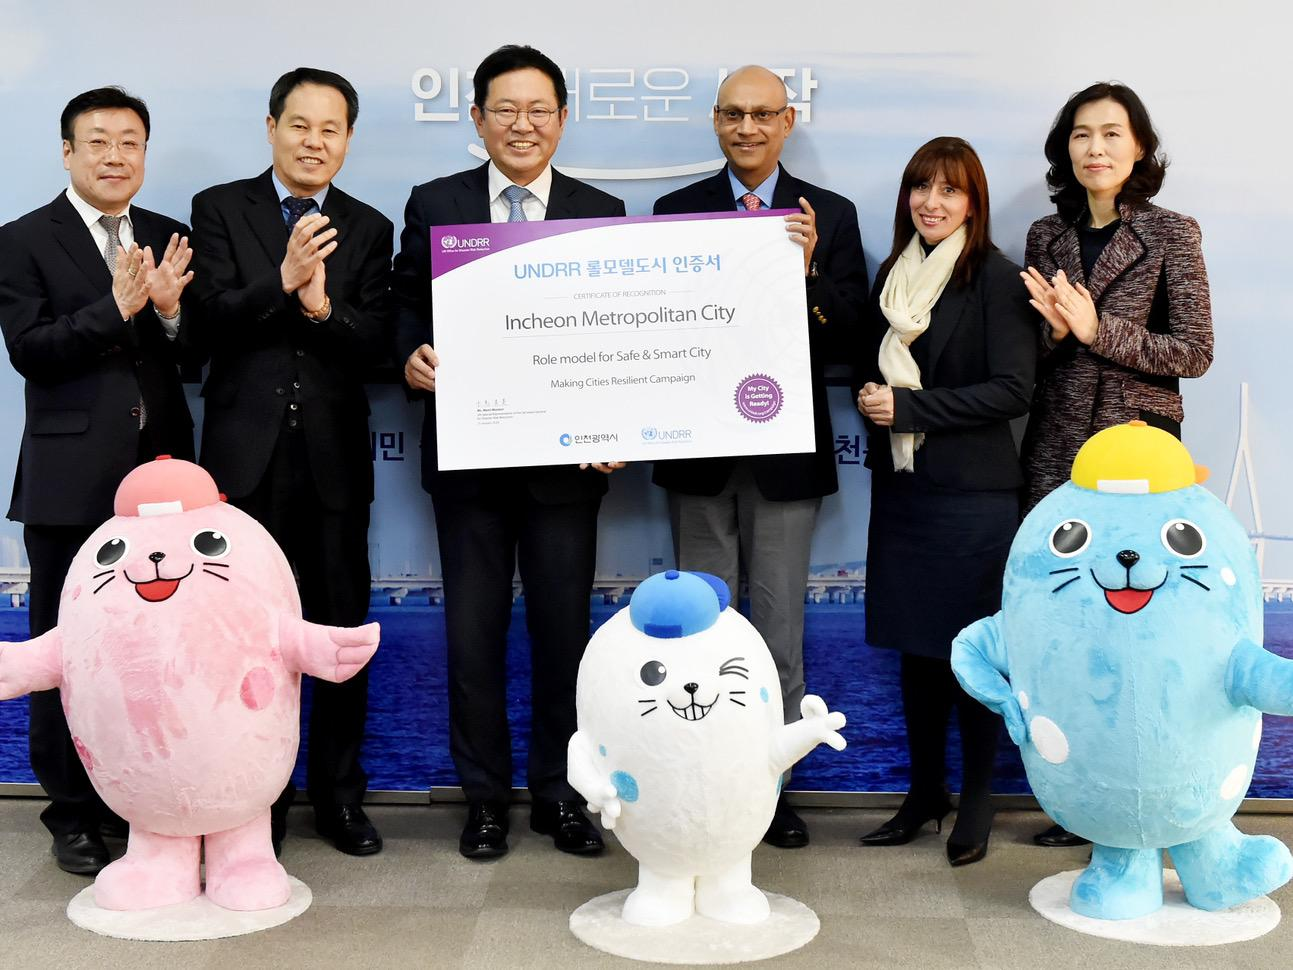 Safe And Smart City Incheon Is Recognized As A Role Model City Undrr